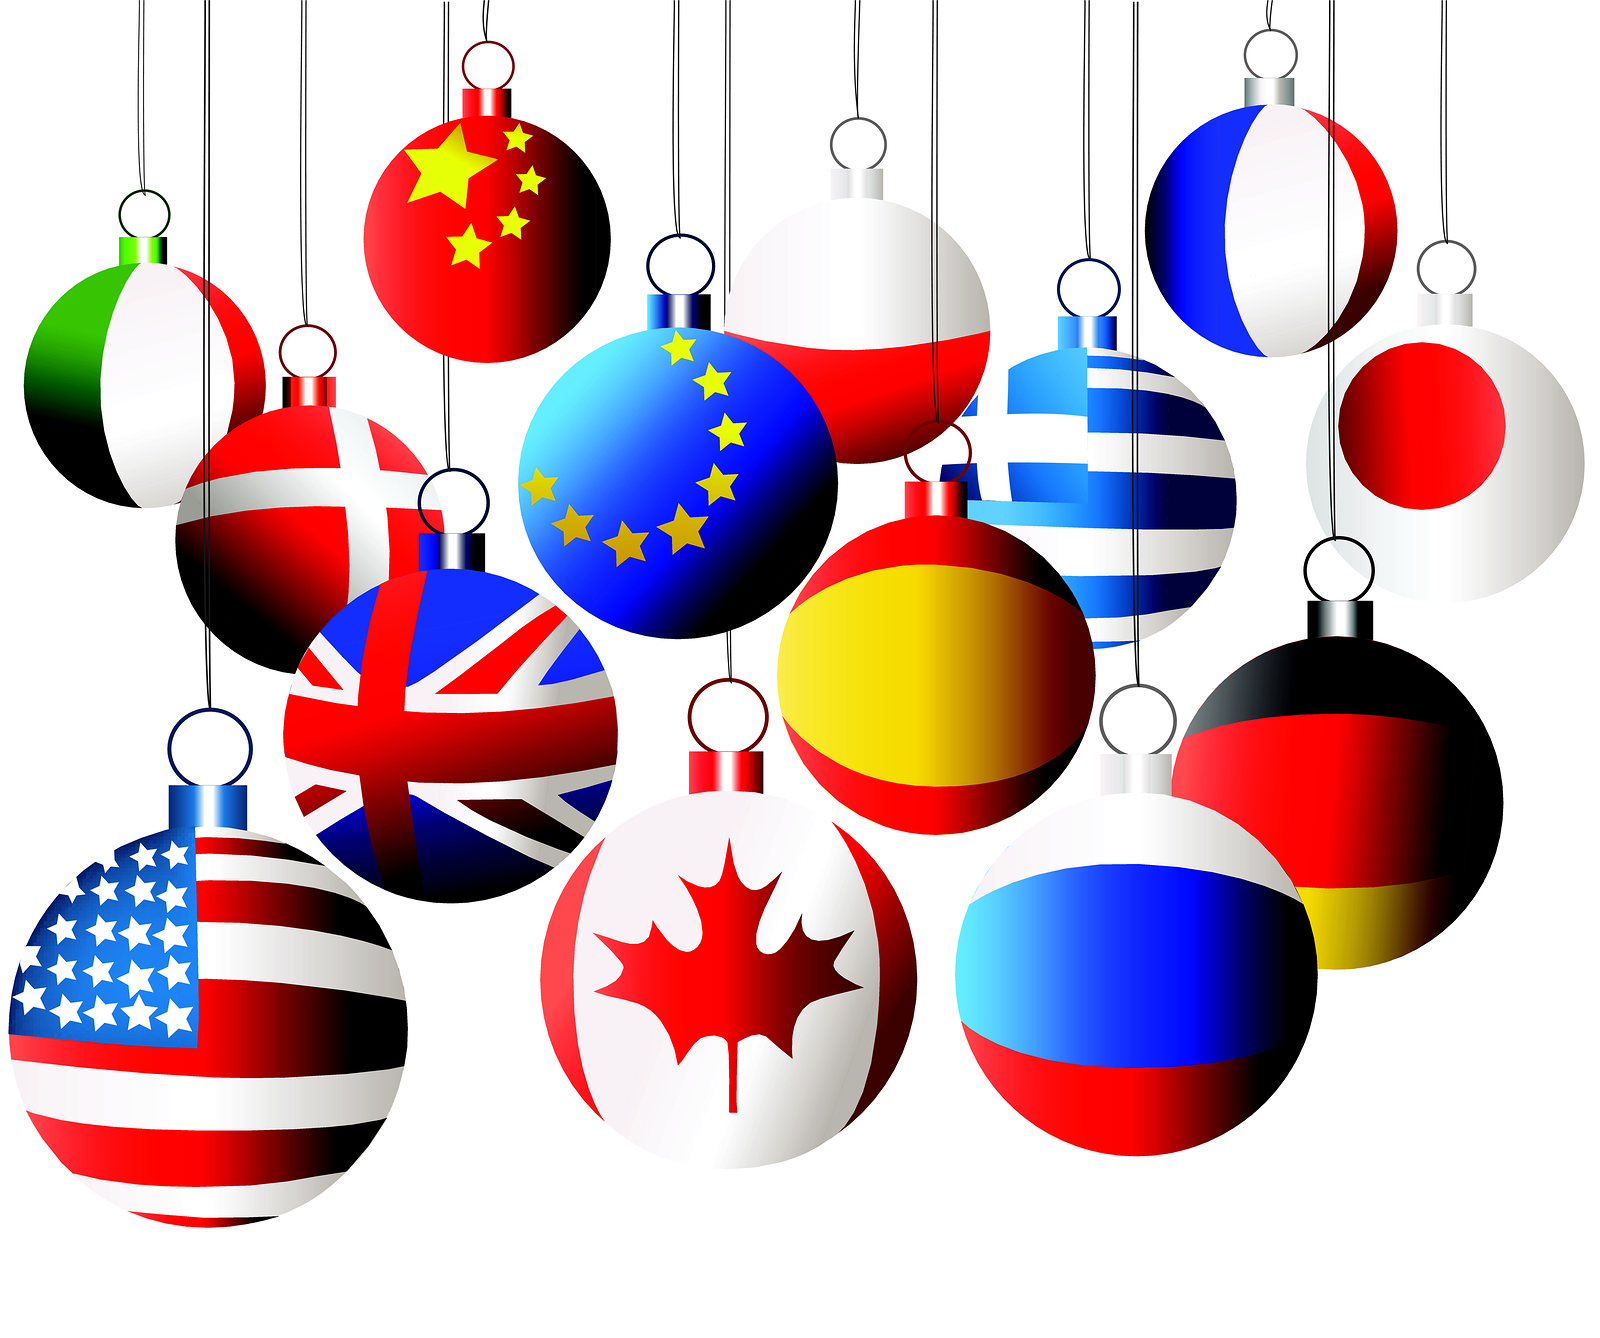 International ornaments